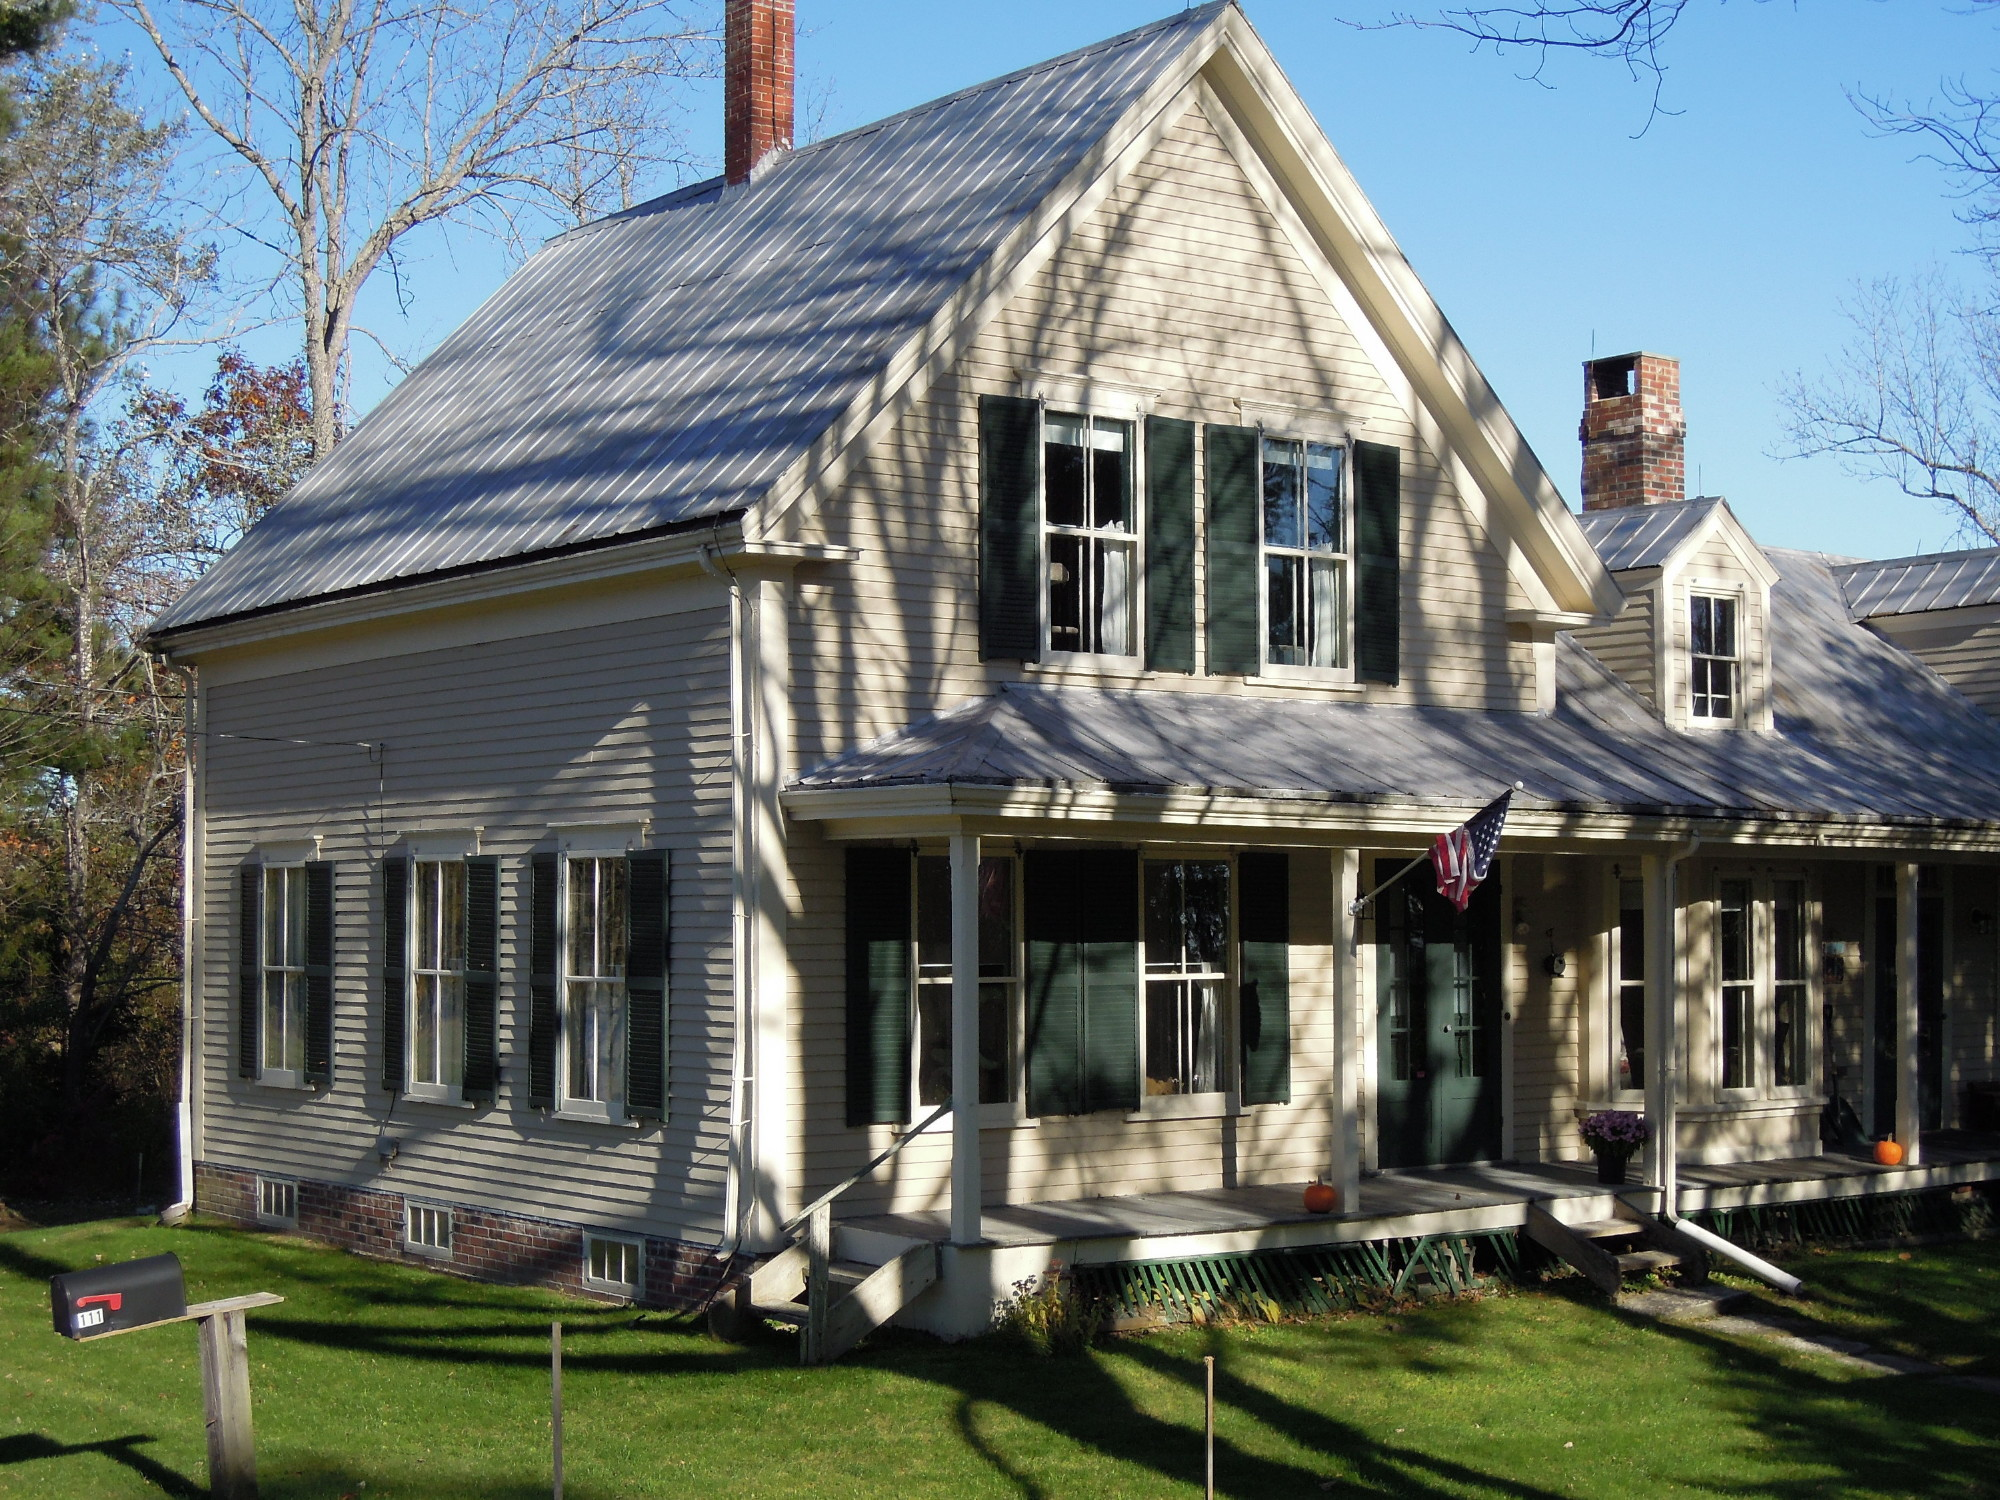 This home, circa 1930, needed a new roof to replace an old and failing tin roof.